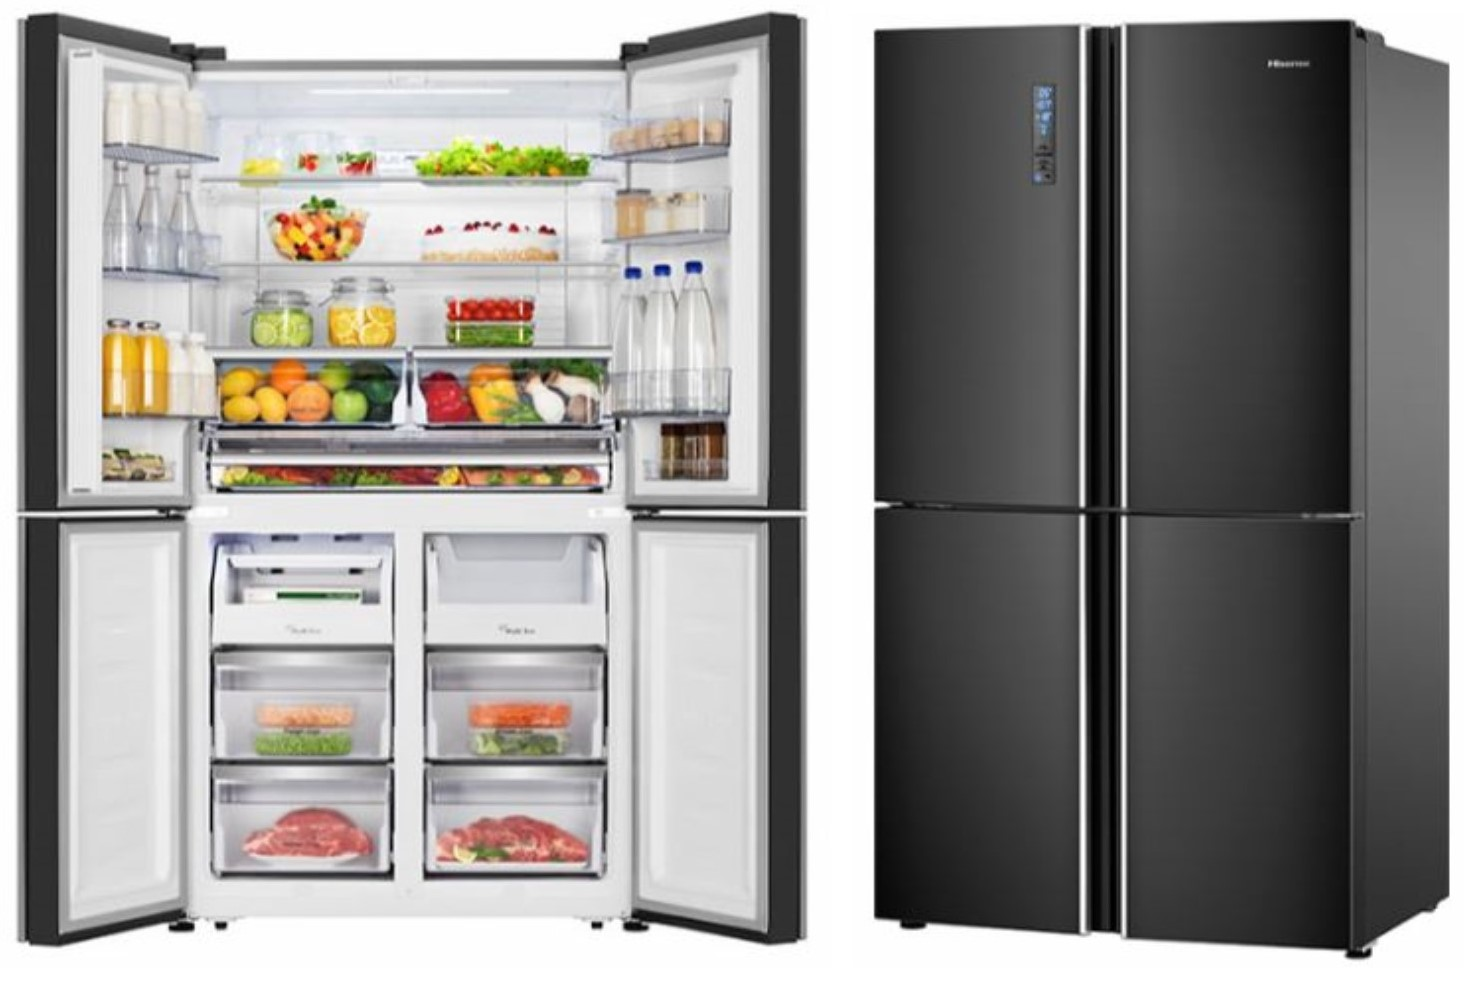 Hisense Fridge Reviews Kenya